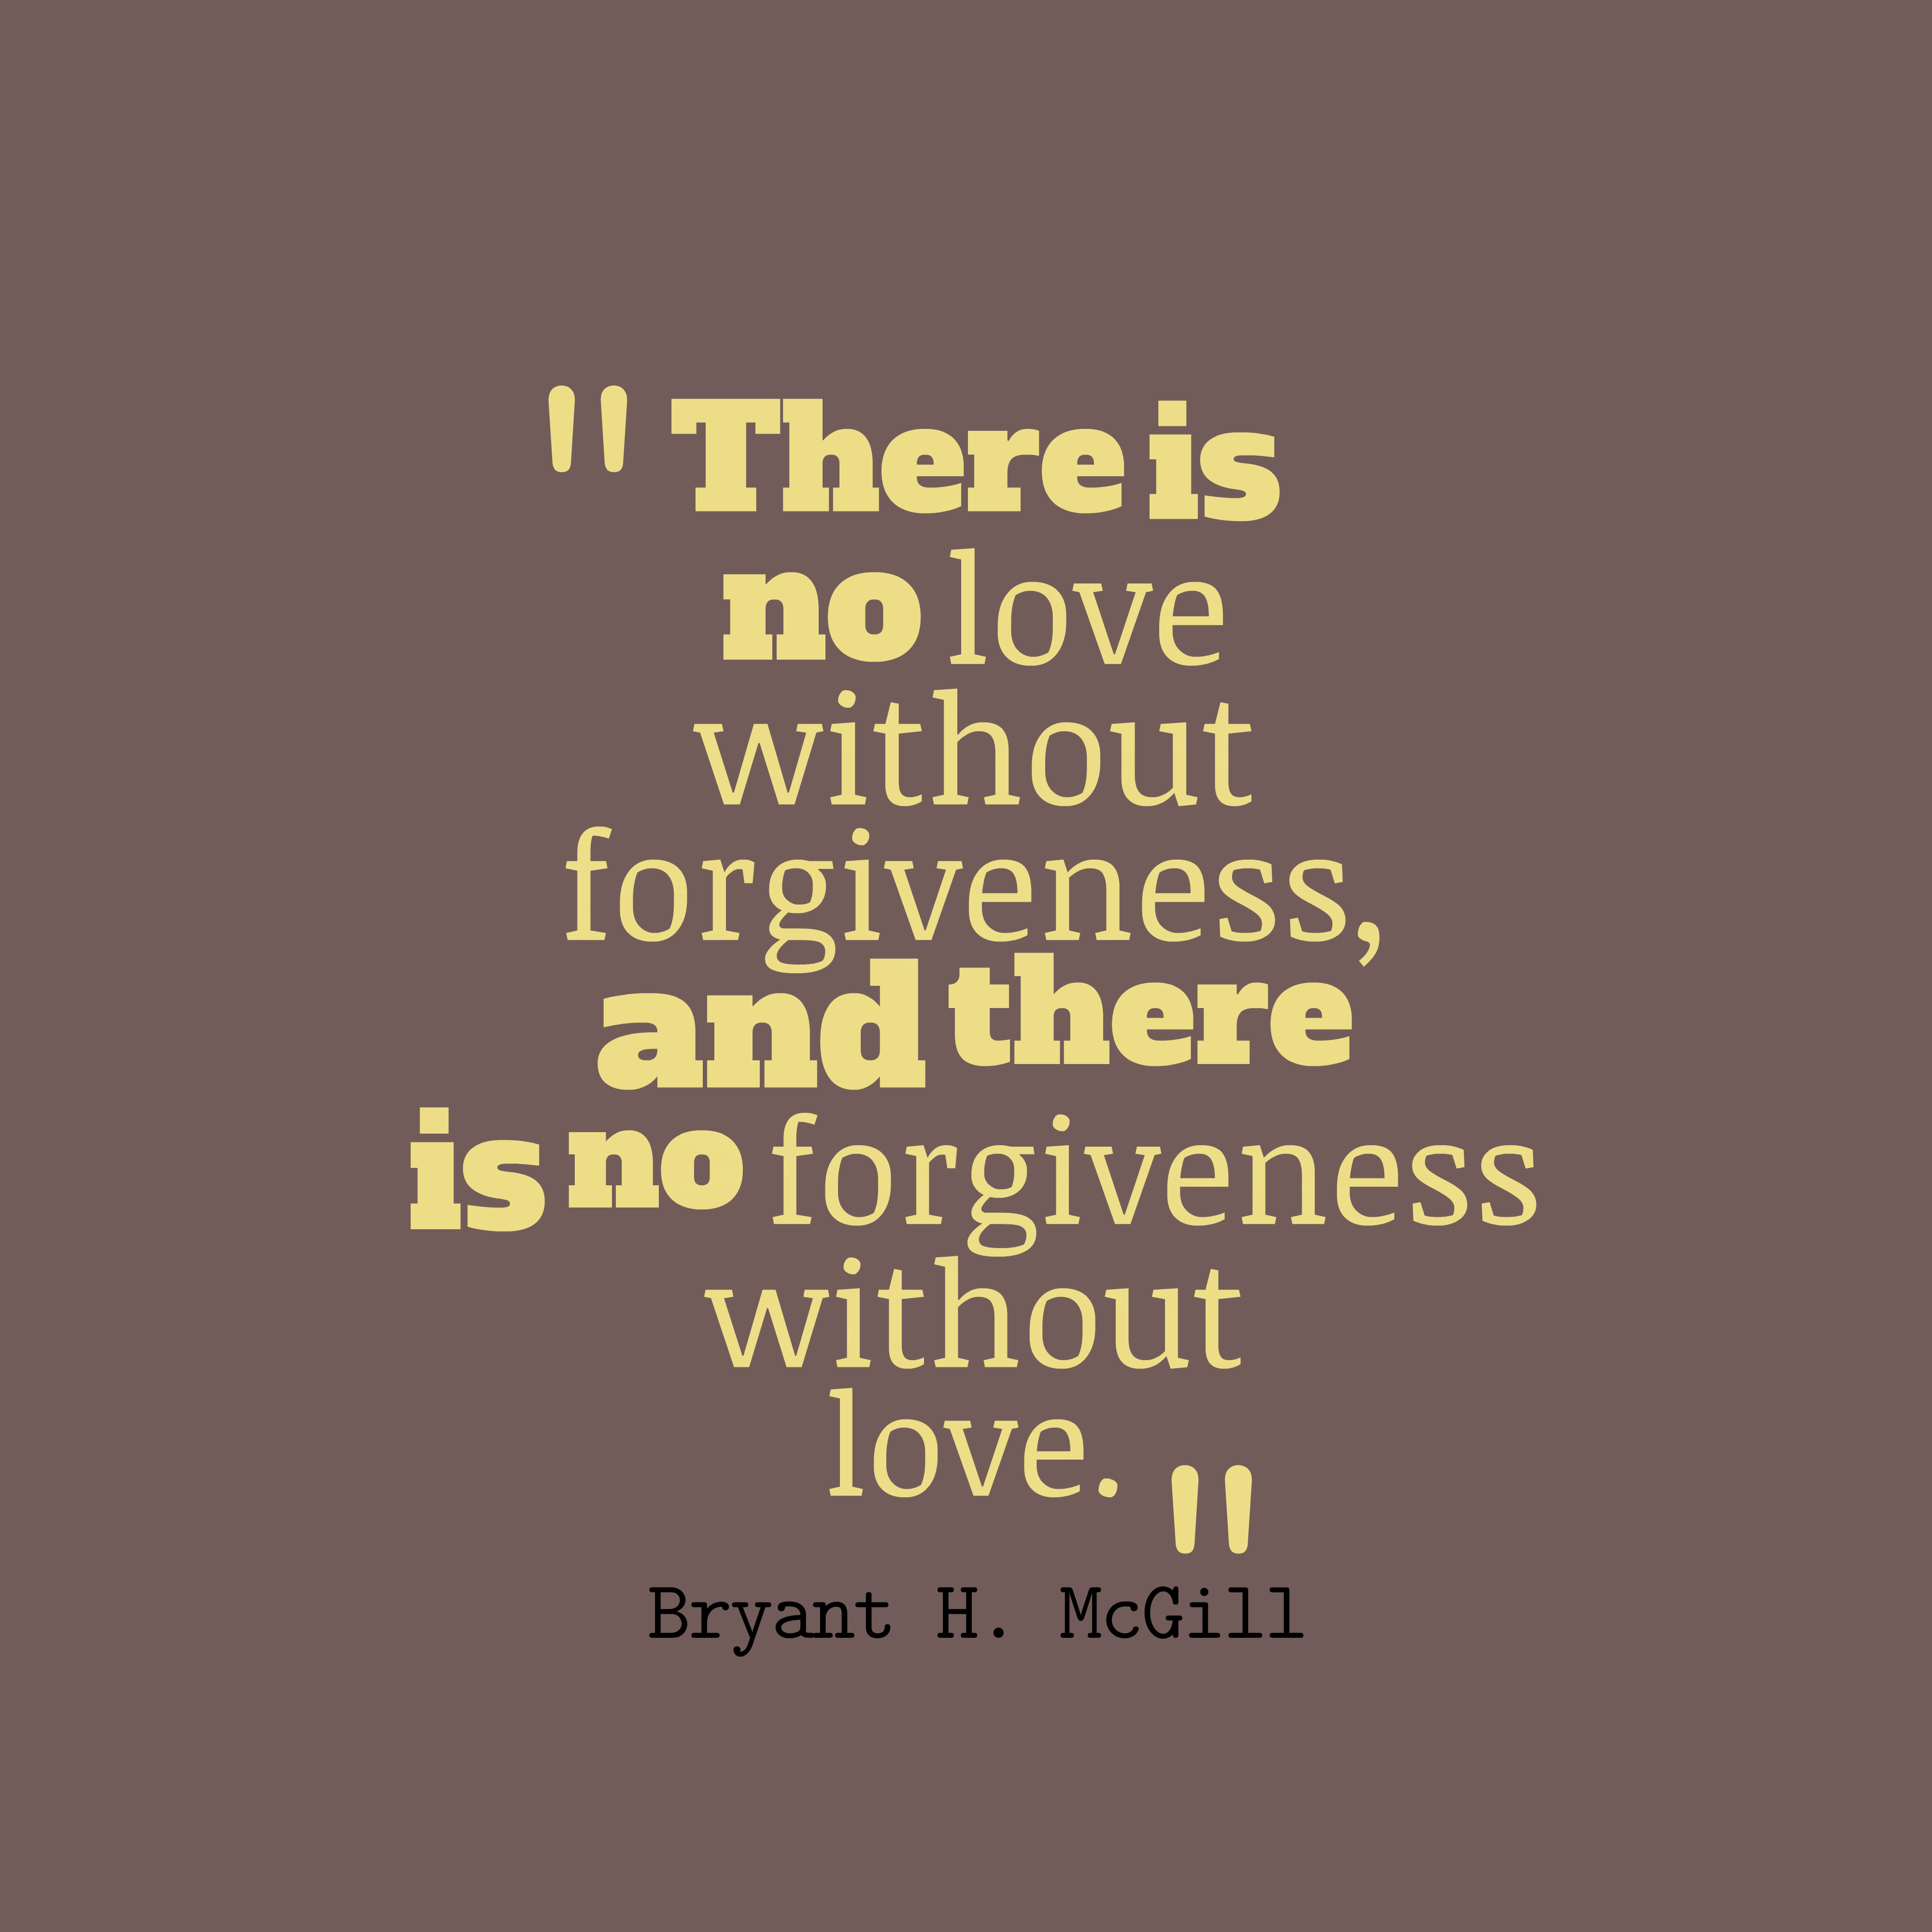 Quotes On Forgiveness And Second Chances: Quotes About Forgiveness. QuotesGram